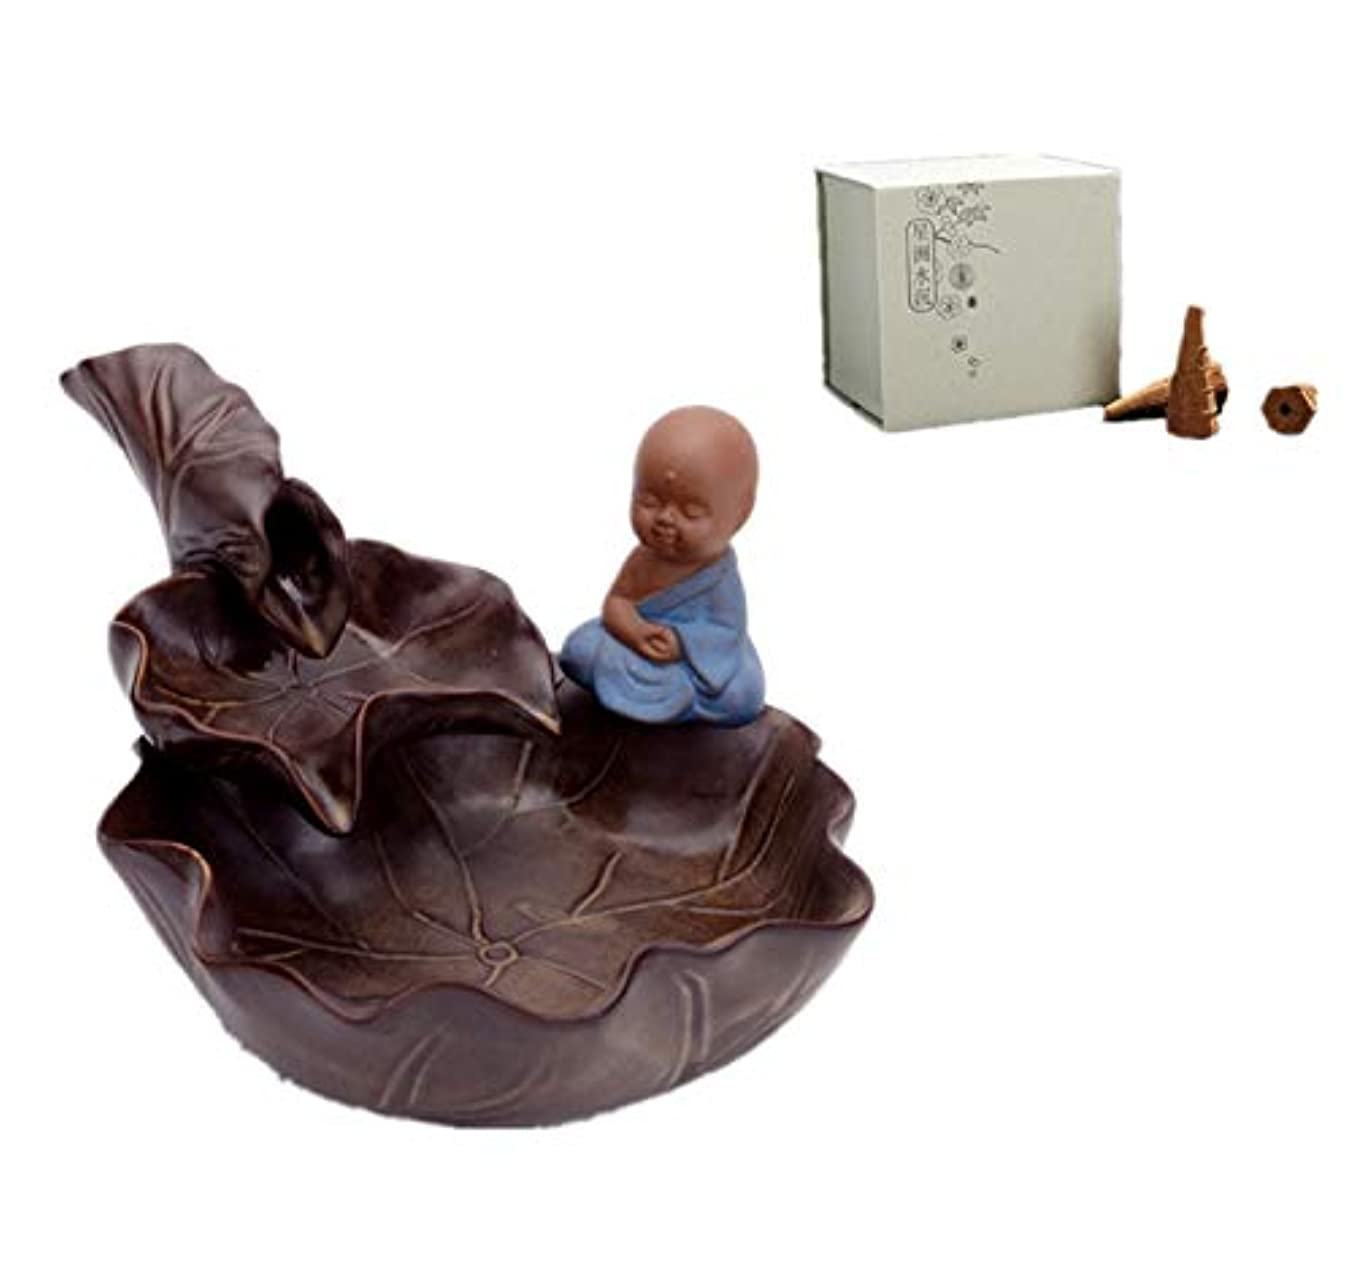 思い出させる歯科医法律XPPXPP Reflux Incense Burner With 40 Reflux Cones, Household Ceramic Reflux Cone-Shaped Candlestick Burner